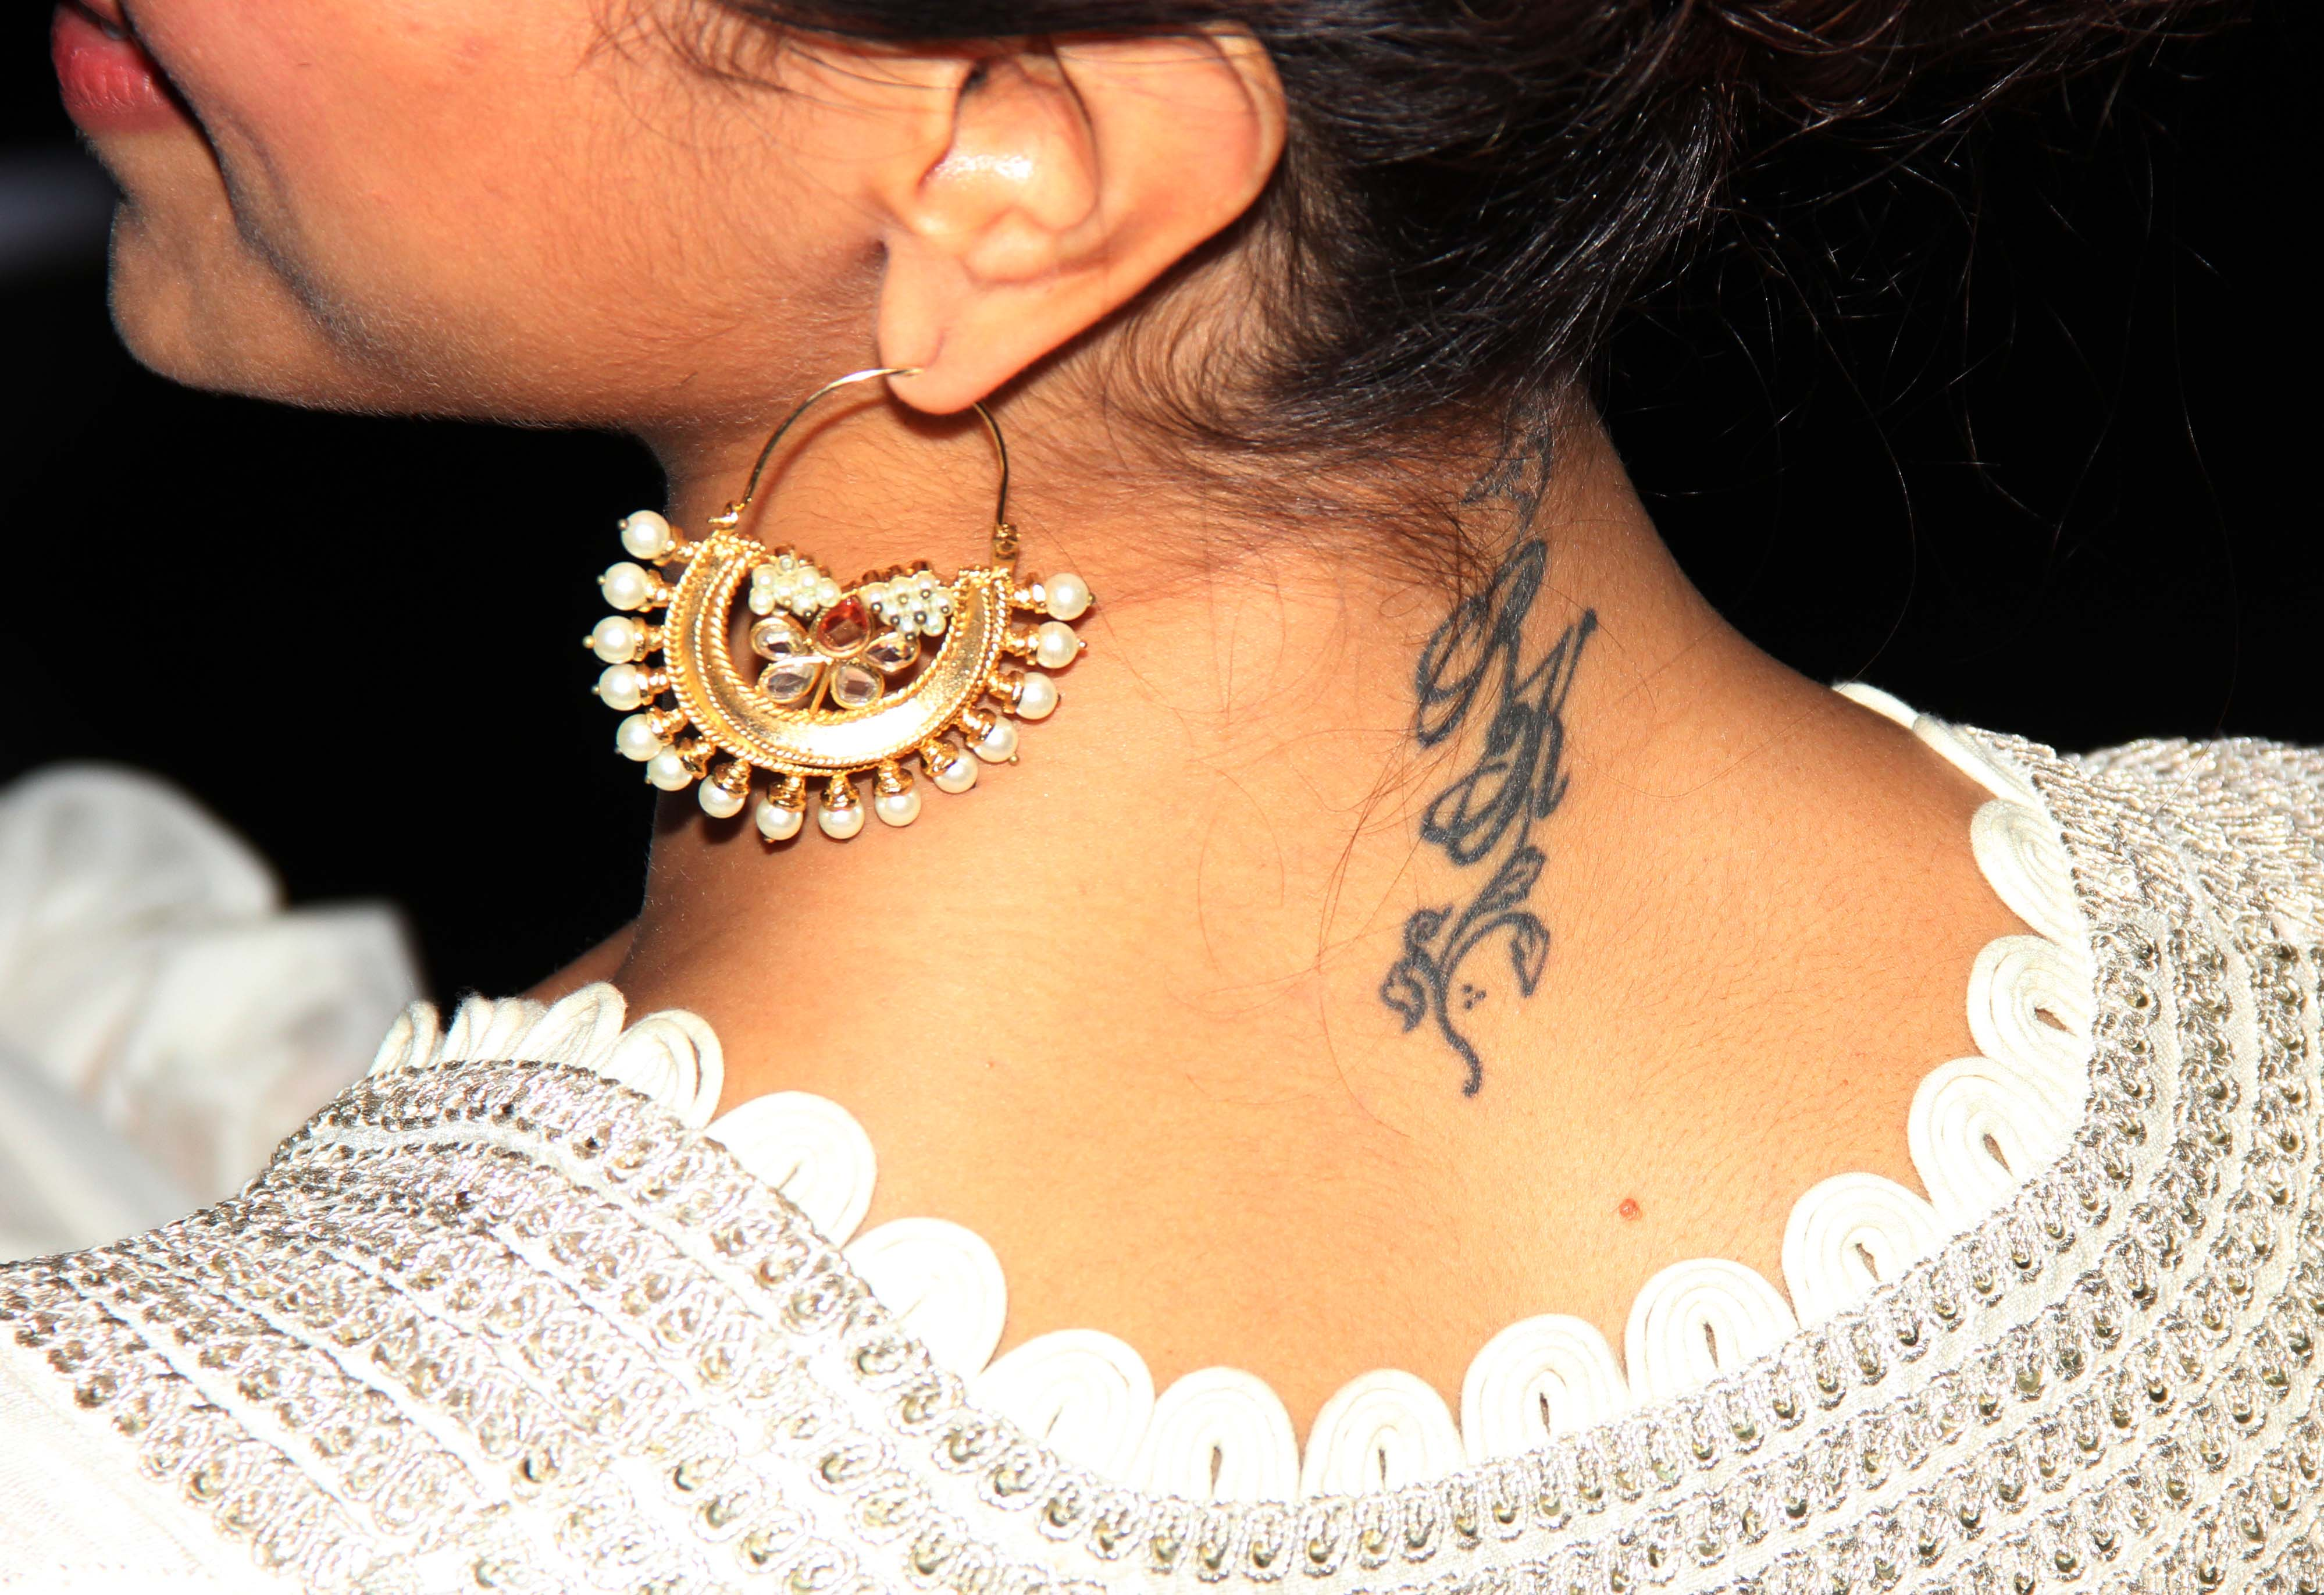 15 Tiny Tattoos and Their Big Hidden Meanings ...